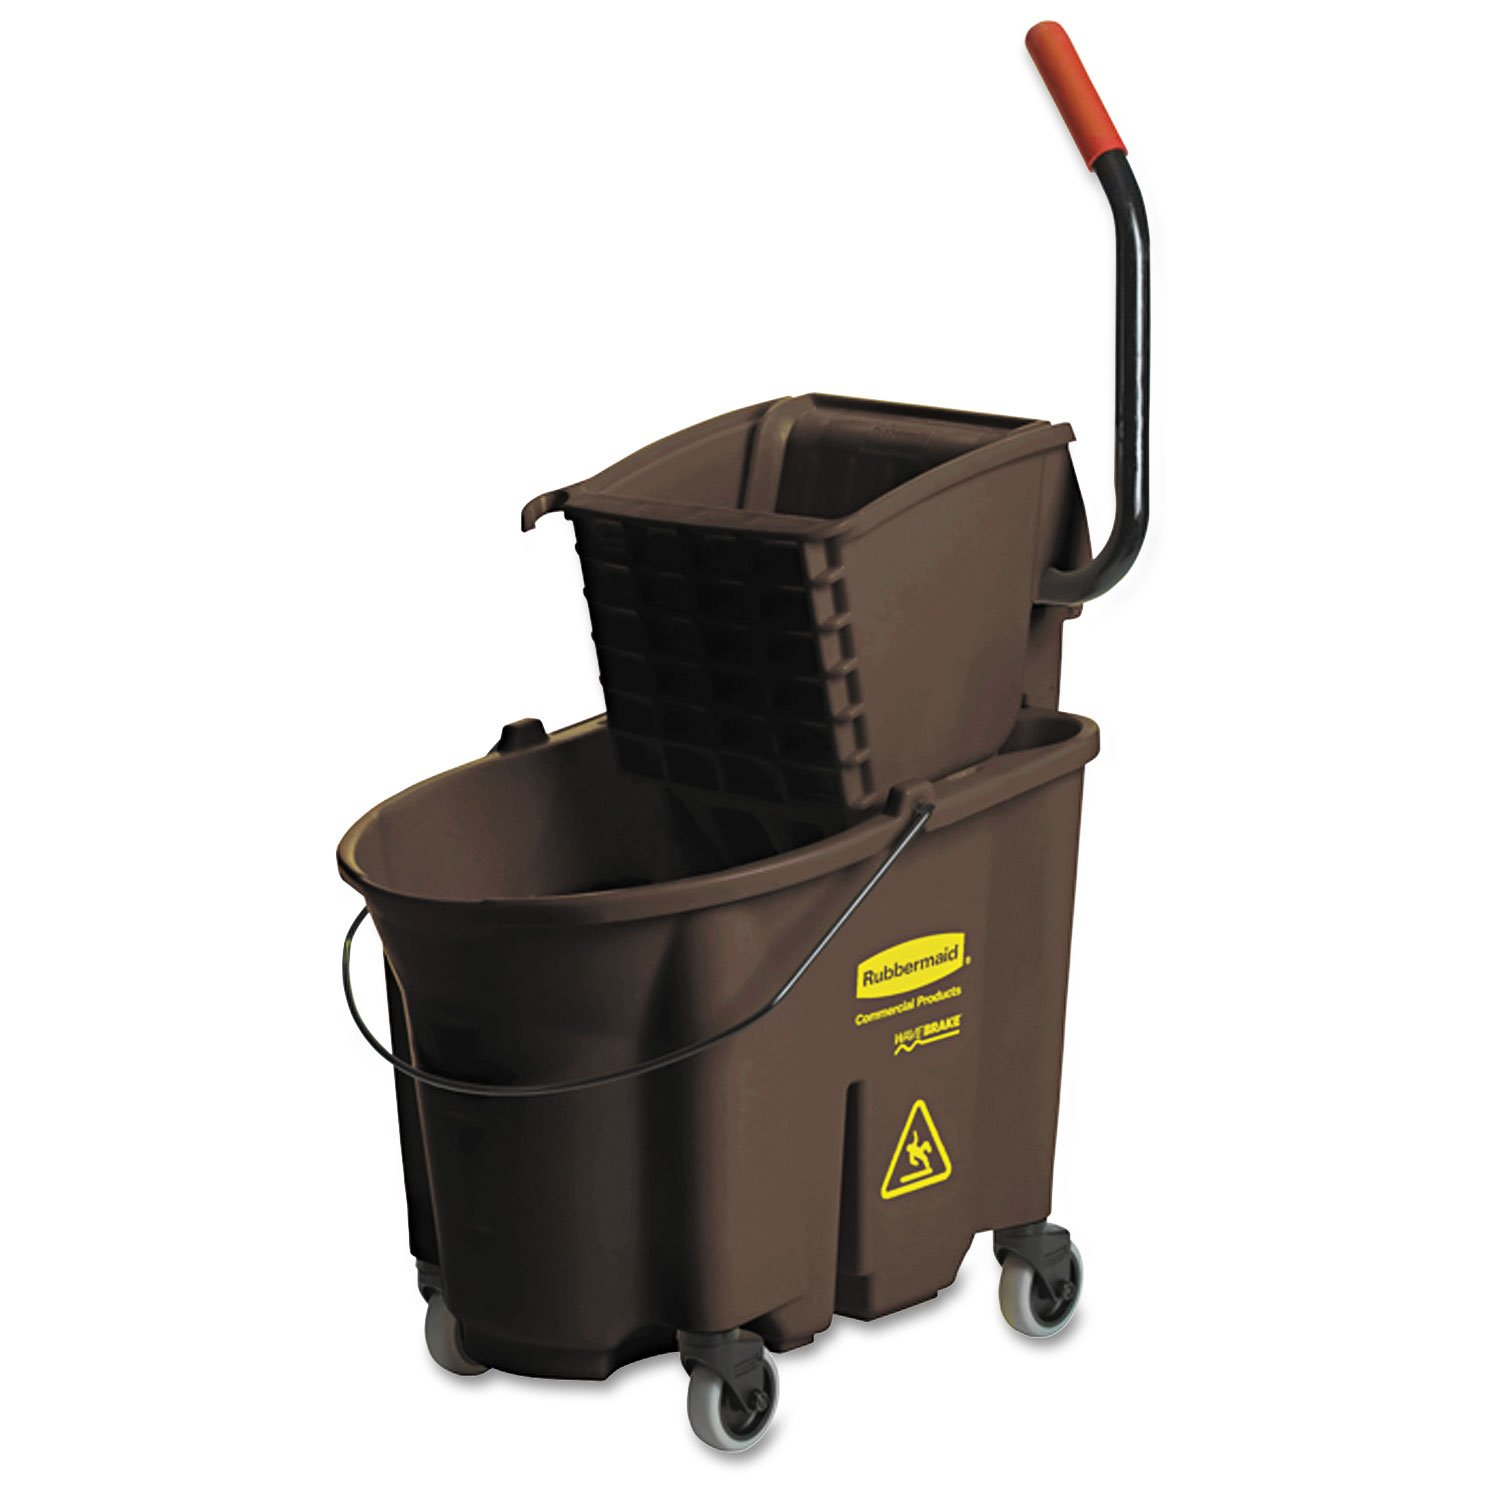 RCP758088BN - Rubbermaid Wavebrake 35 Quart Bucket/Wringer Combinations by Rubbermaid